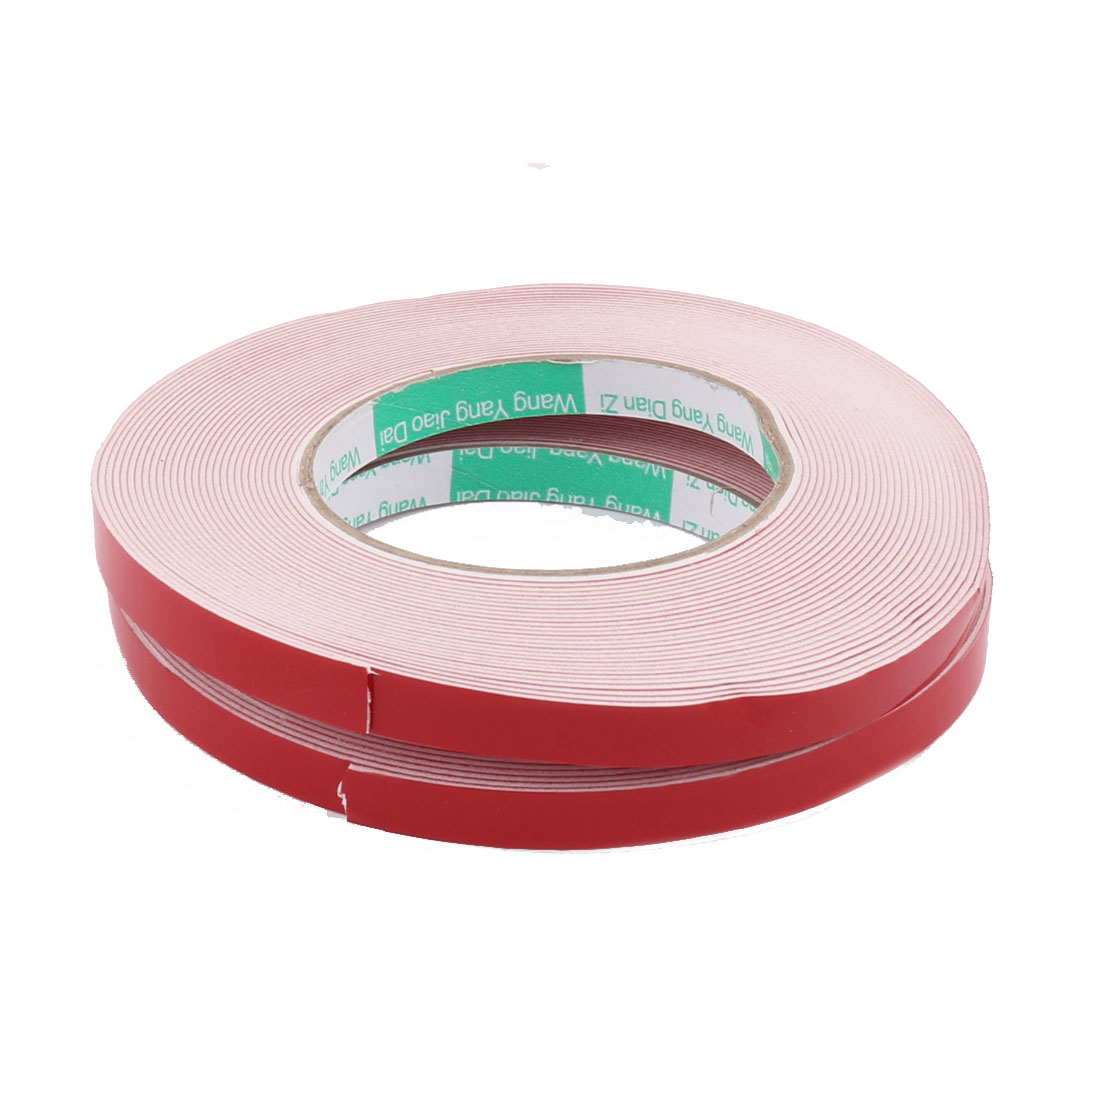 2pcs 10M Length 10MM x 1MM Red White Double Sided Waterproof Sponge Tape for Car